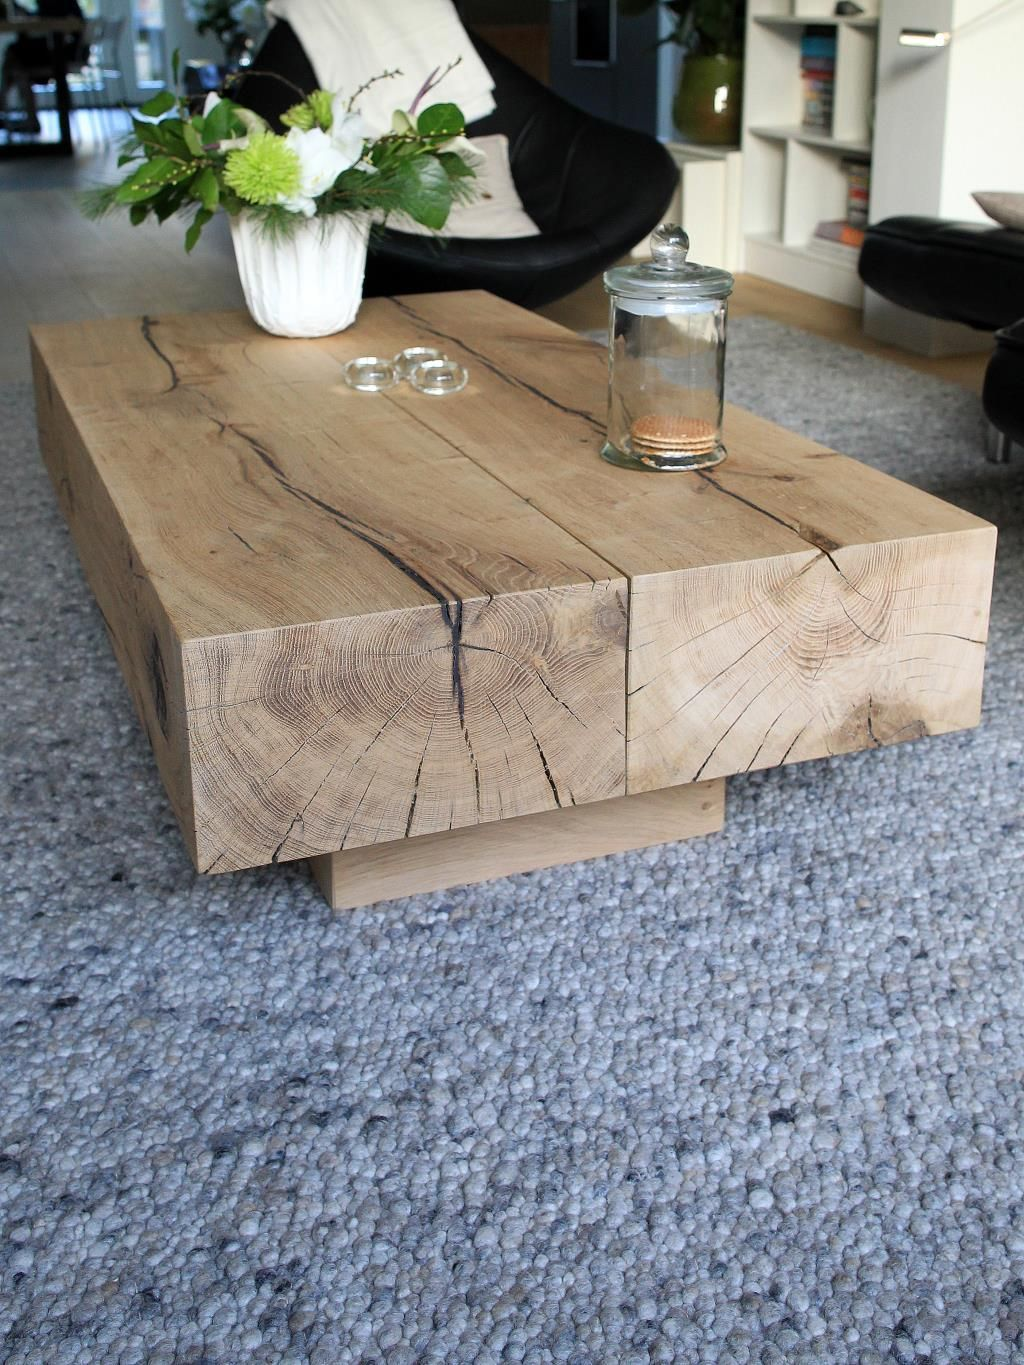 Reclaimed Wood Tempered Glass Top Coffee Table Coffee Table Wood Coffee Table Glass Coffee Table [ 1000 x 1500 Pixel ]